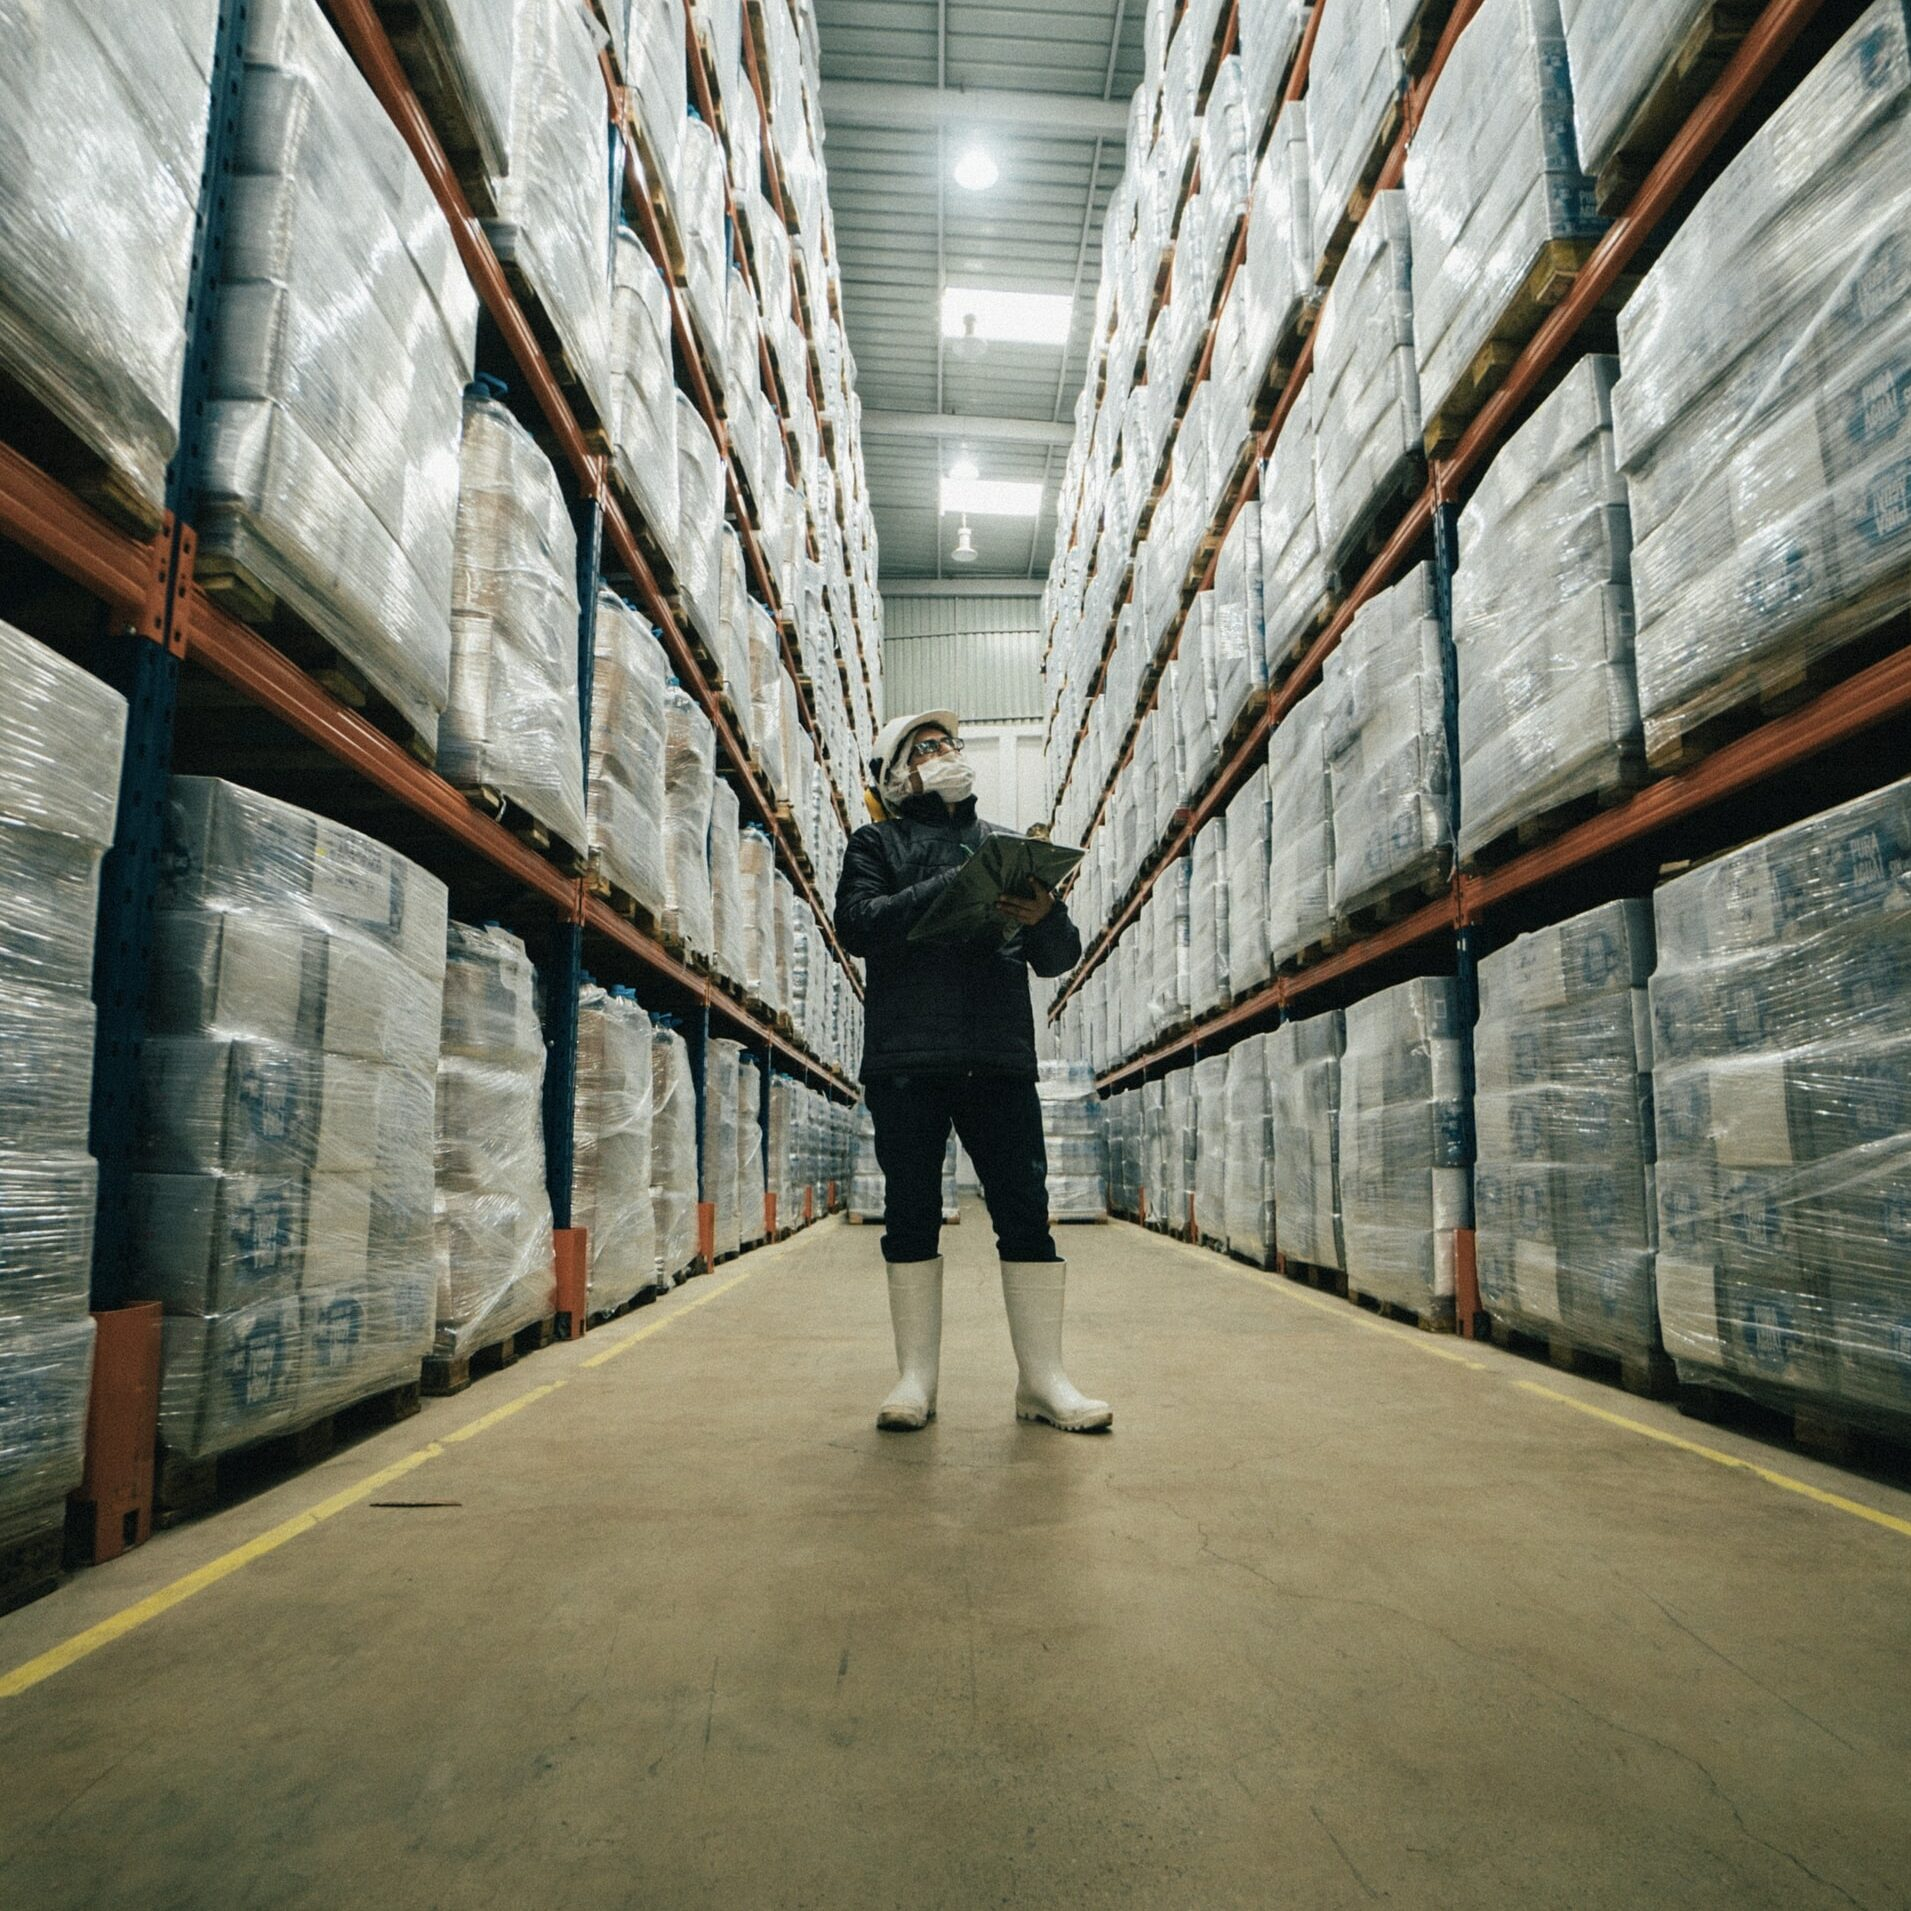 inspector reviewing a cannabis warehouse